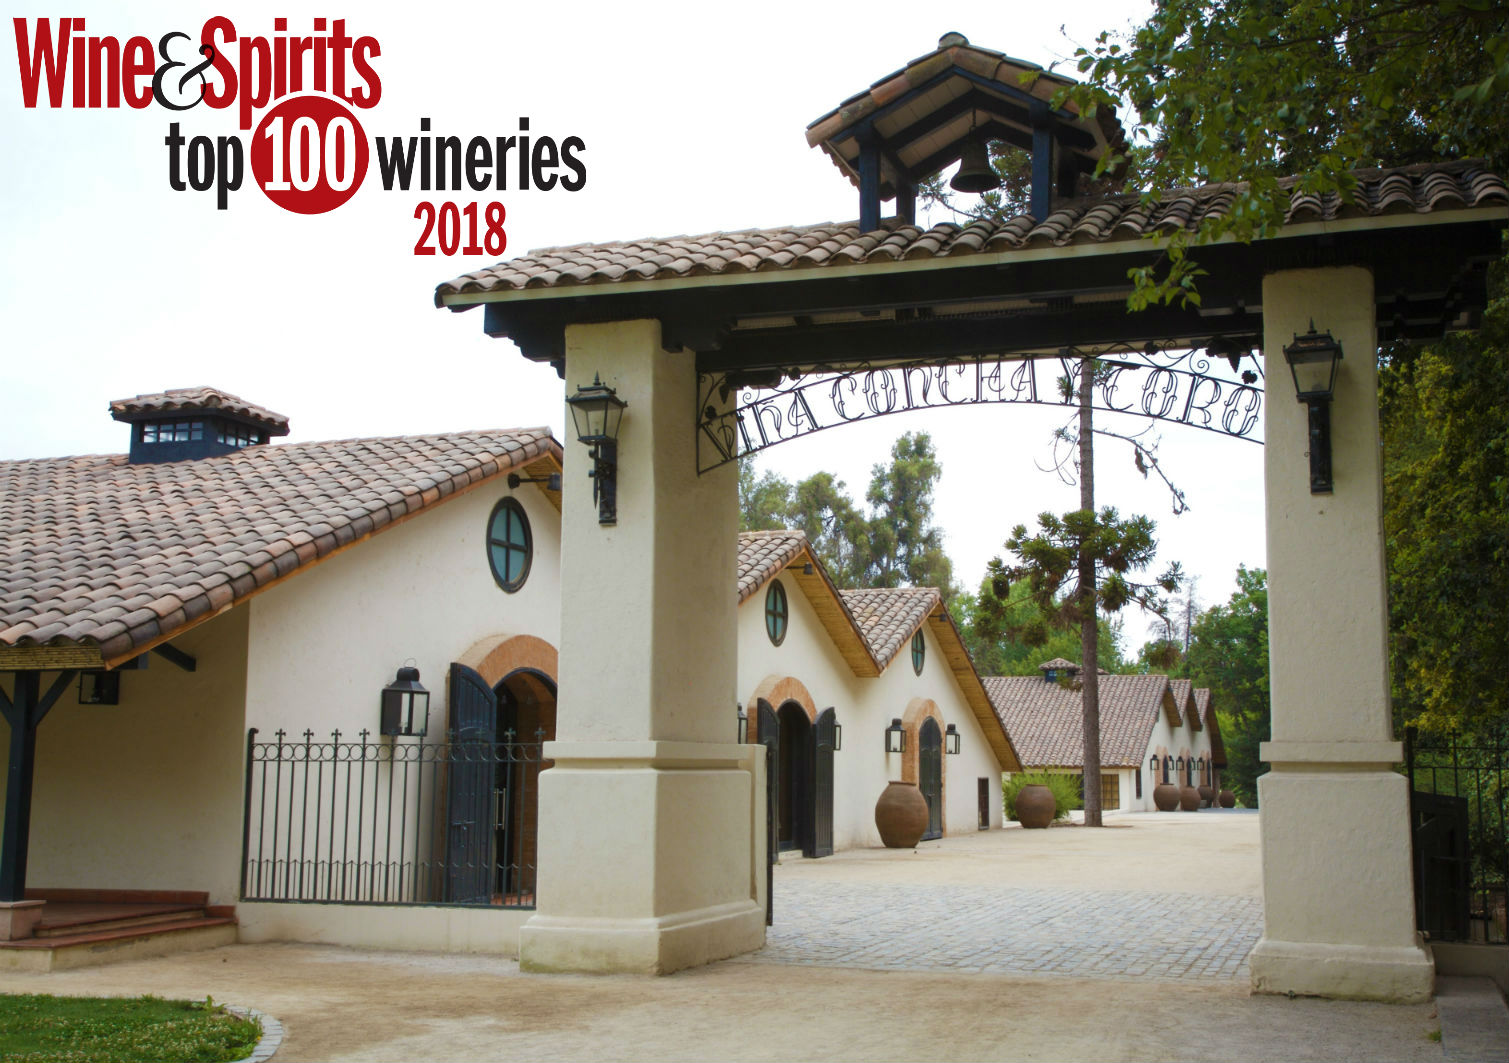 Concha y Toro once again recognized by Wine and Spirits as one of the World's Top 100 Wineries